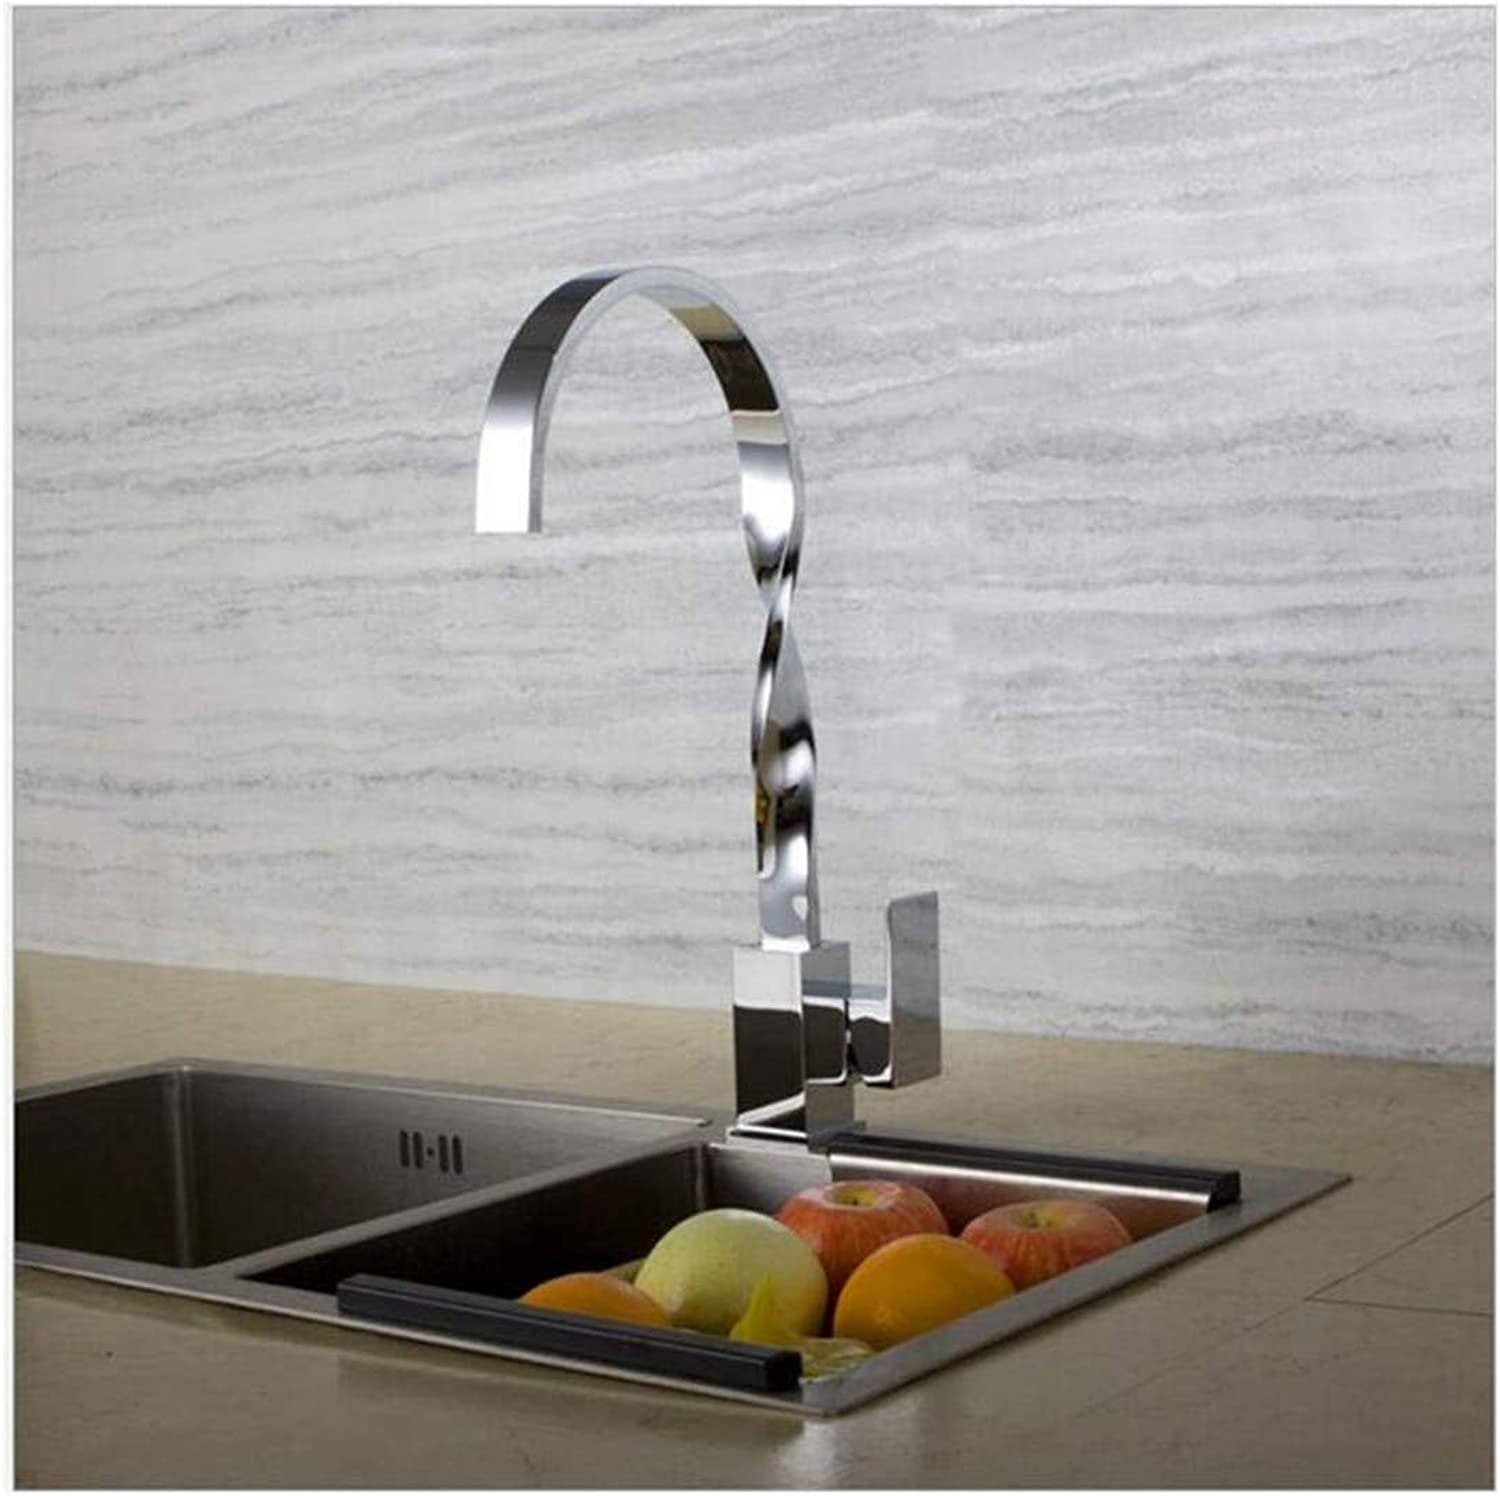 Kitchen Bath Basin Sink Bathroom Taps Kitchen Sink Taps Bathroom Taps Kitchen Tap Ctzl0166